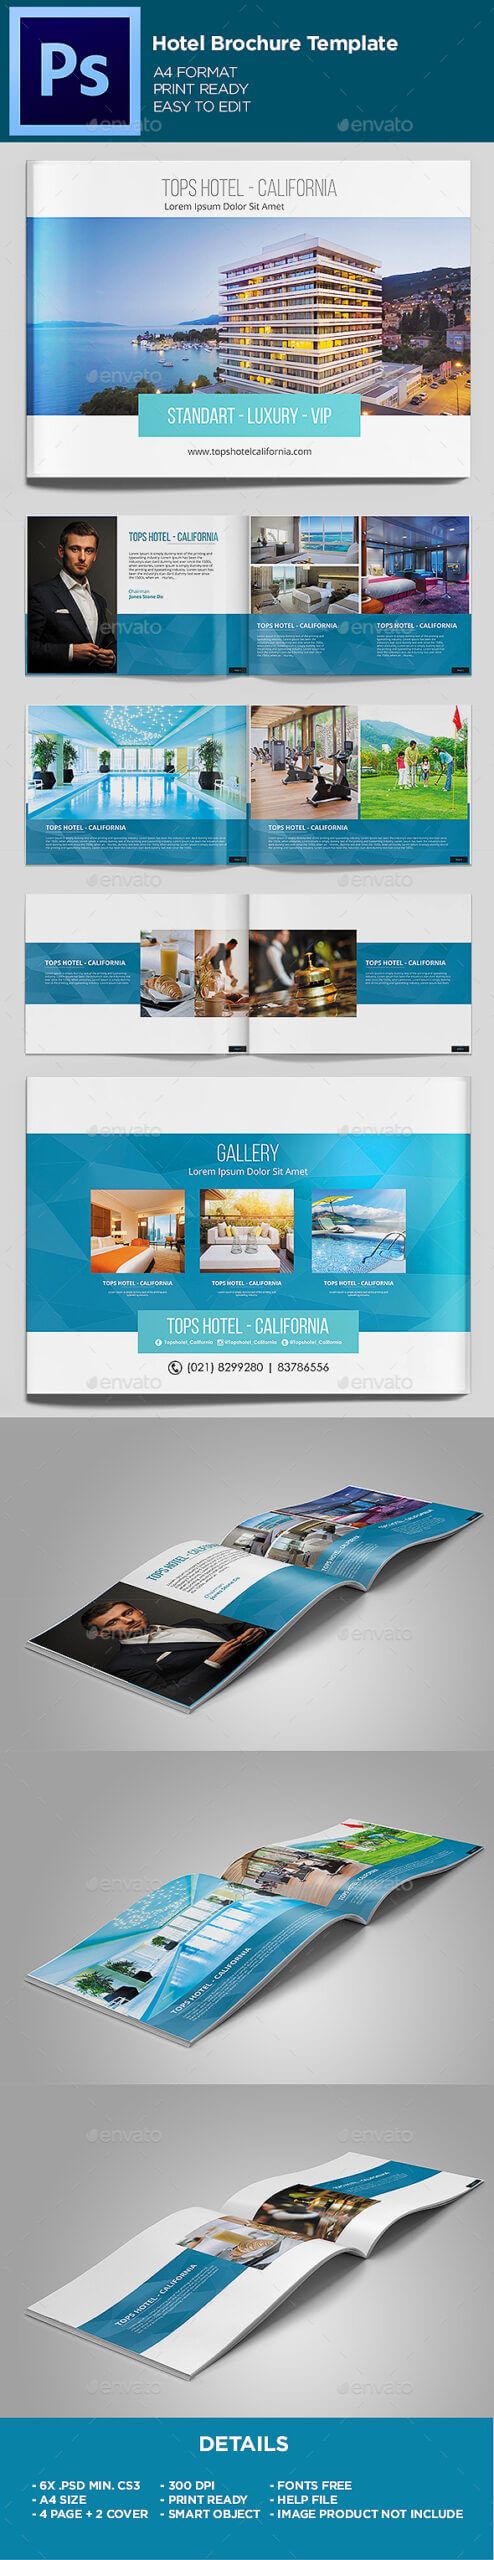 Hotel Brochure Graphics, Designs & Templates From Graphicriver Throughout Hotel Brochure Design Templates